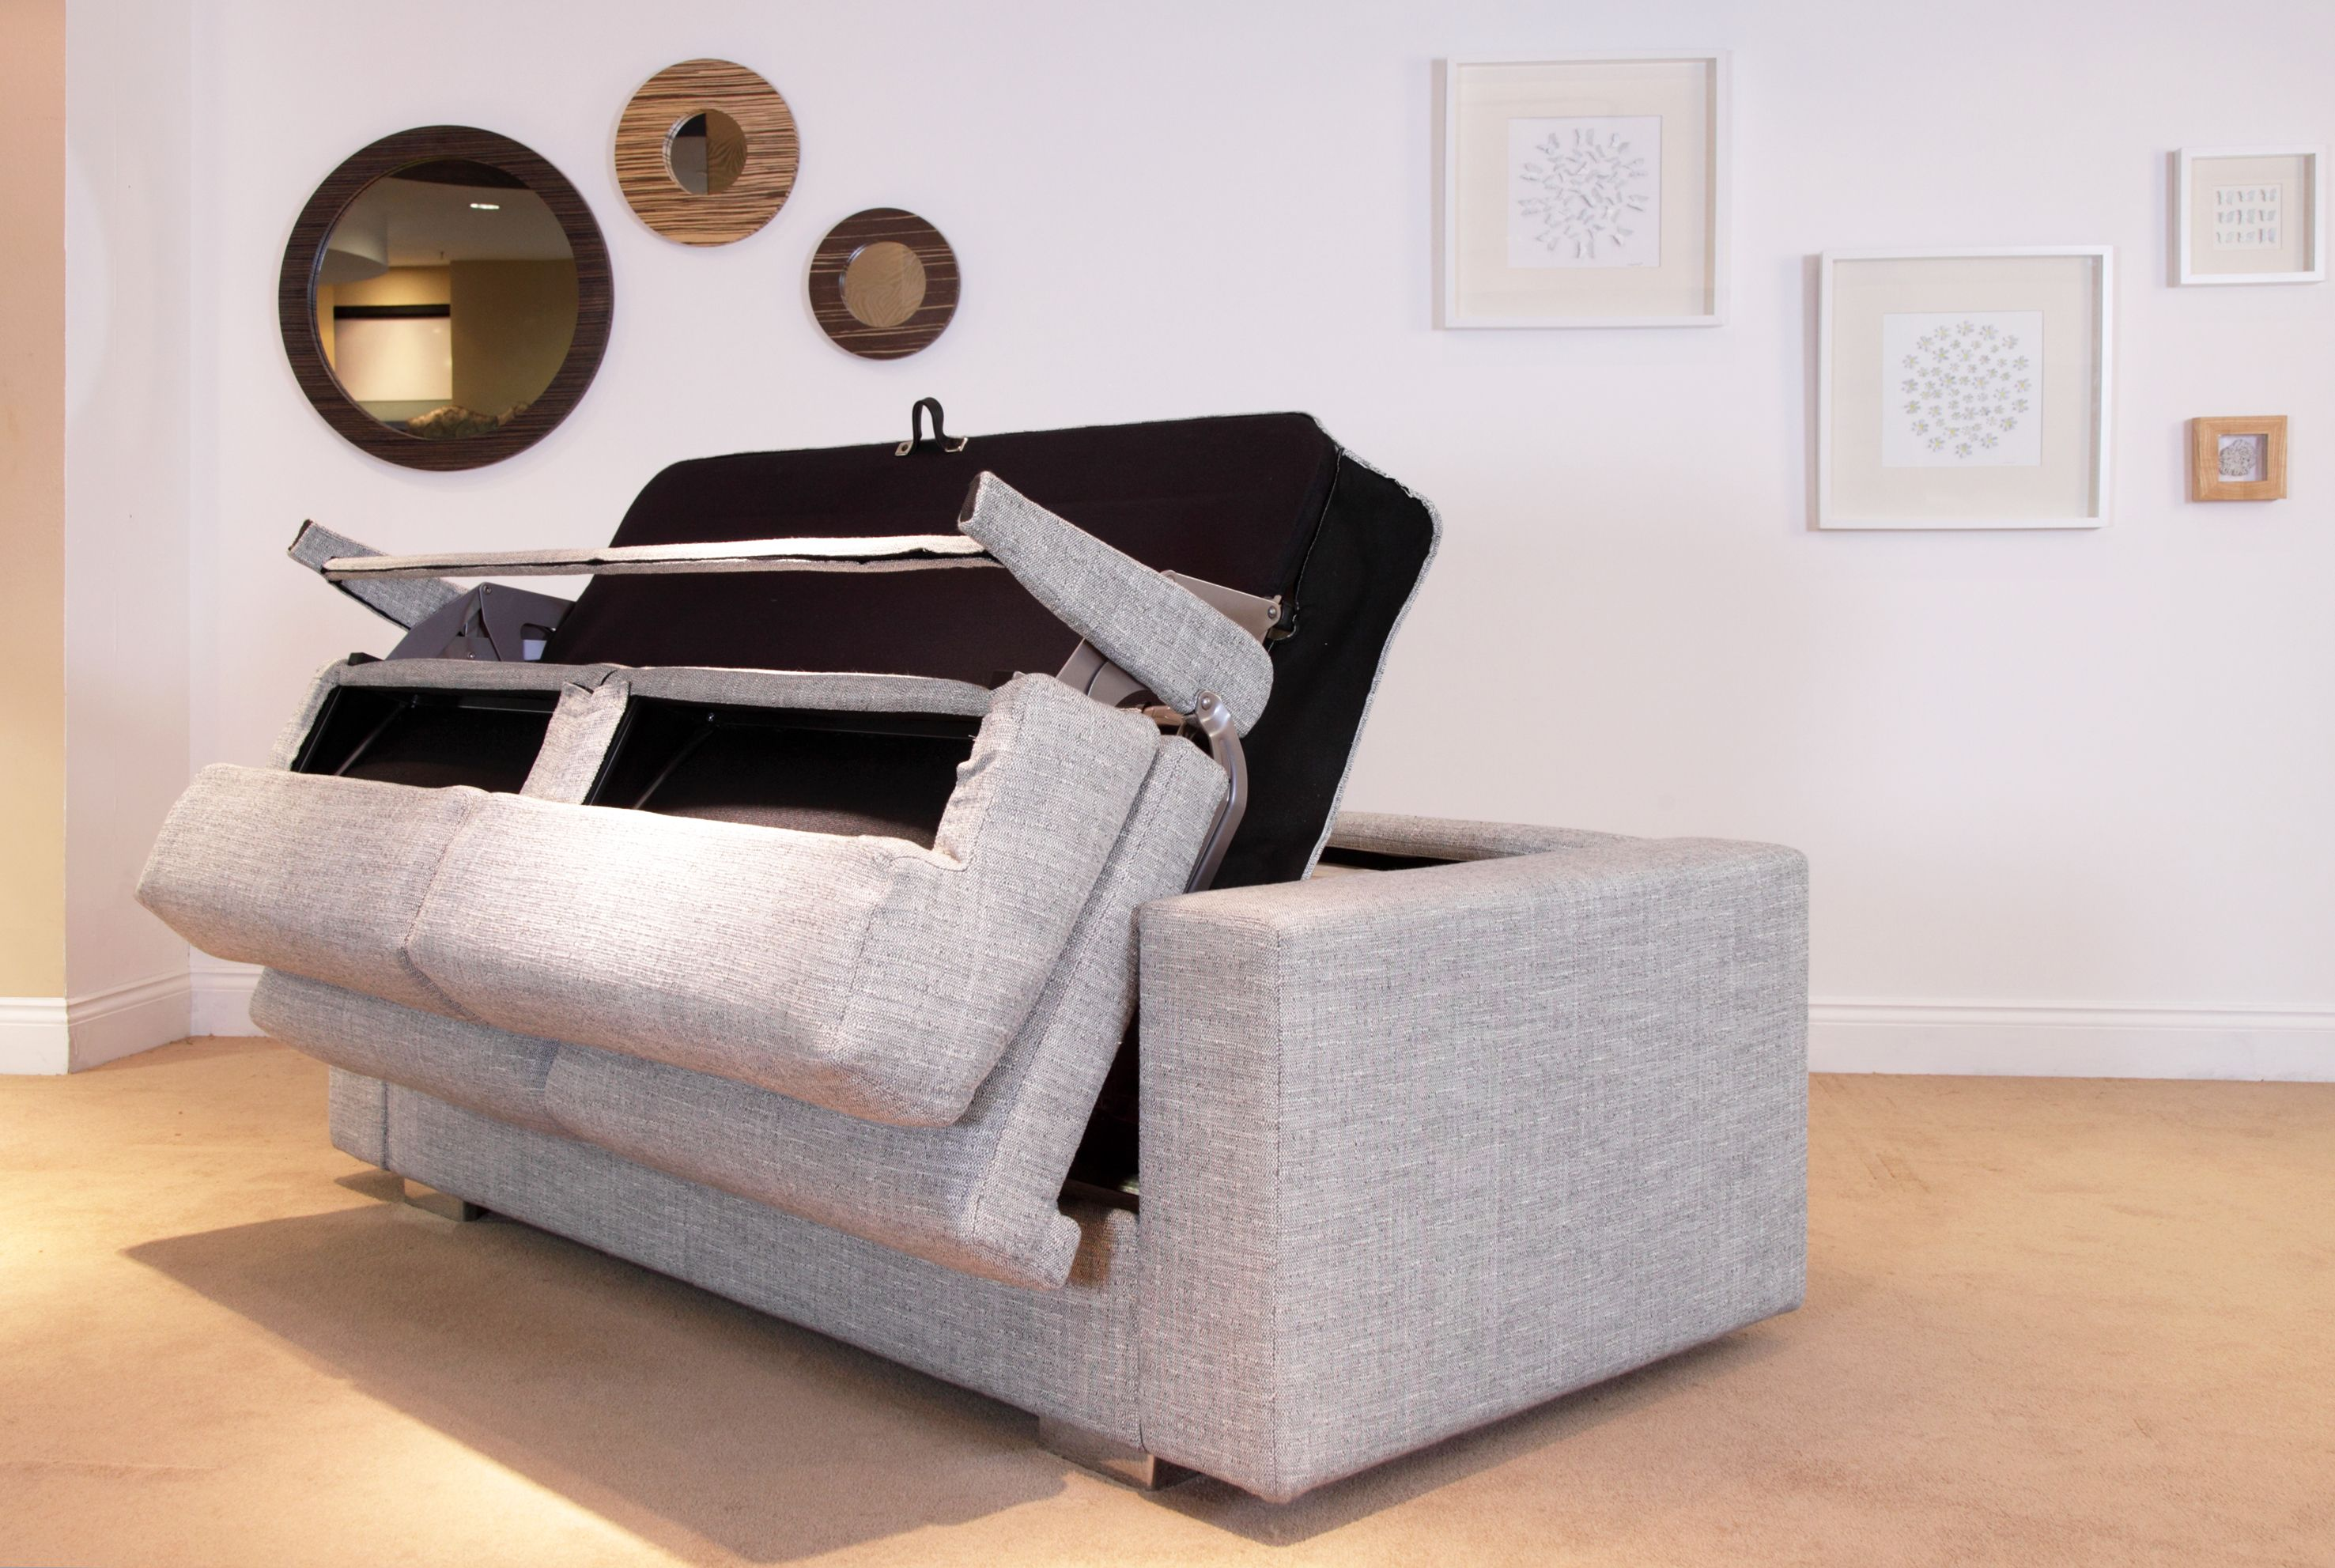 This Is A Good Example Of The Up And Over Bed Mechanism That We Have On Several Of Our European Sofa Beds Th Luxury Sofa Bed Convertible Furniture Sofa Bed